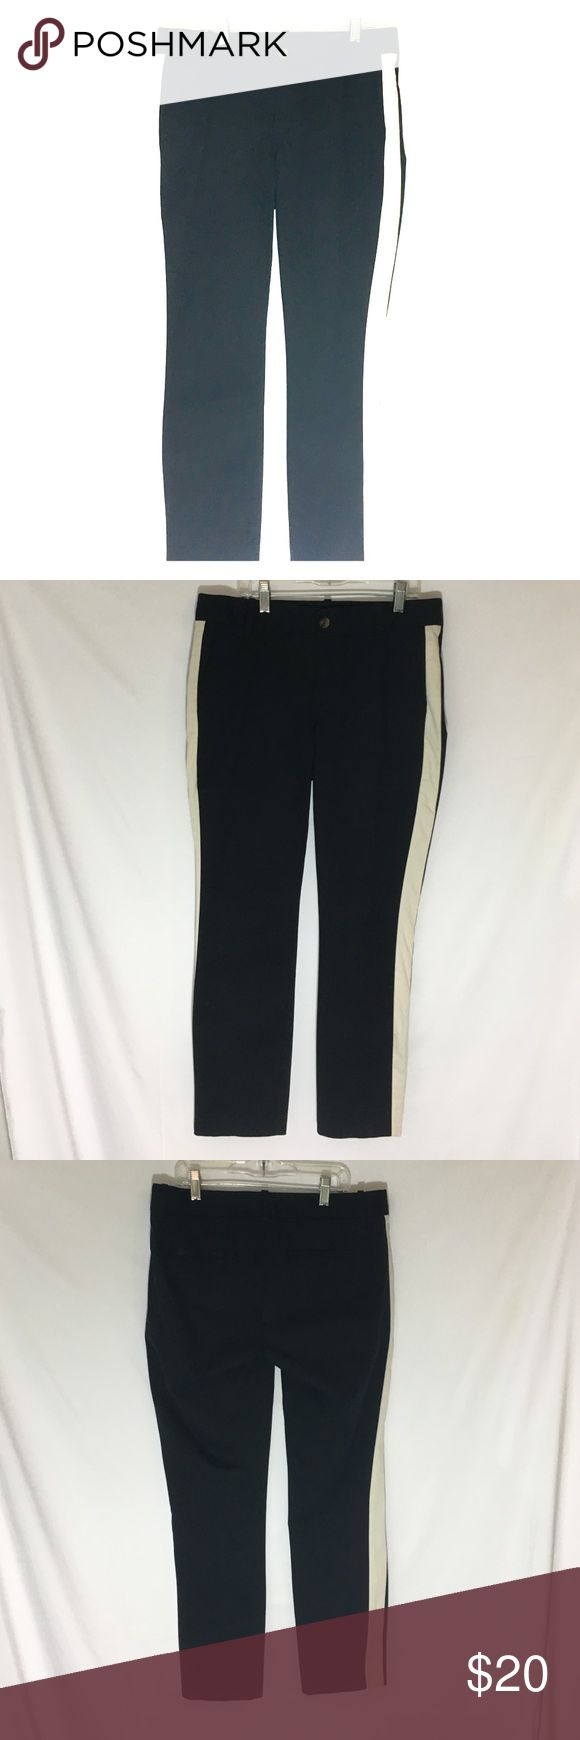 J Crew pants J Crew stretch pants. Black in color with white single stripe down each side. From the Fall 2014 line J. Crew Pants Trousers